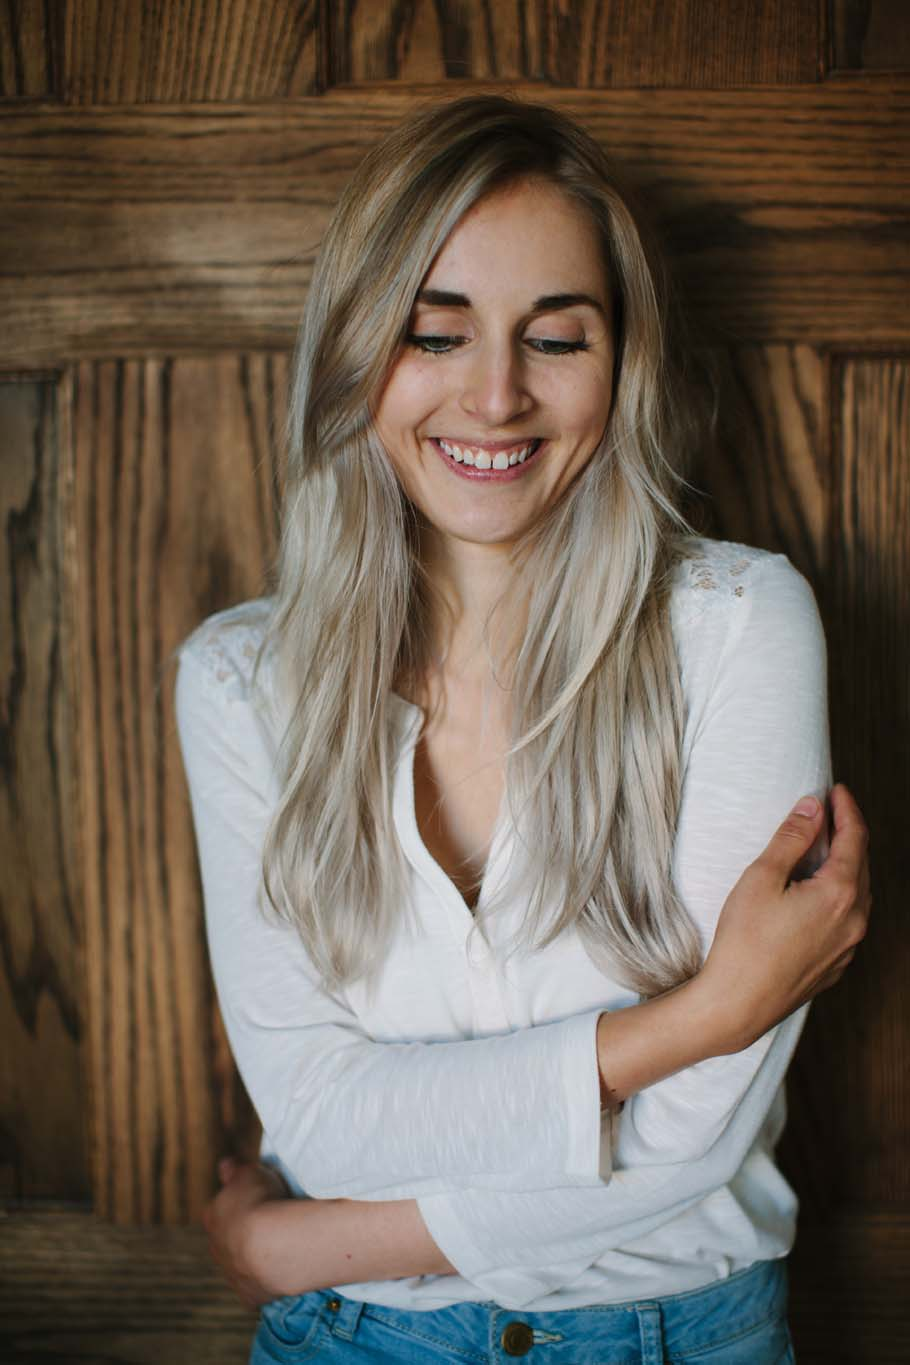 Natural shot of blonde woman against rough wood